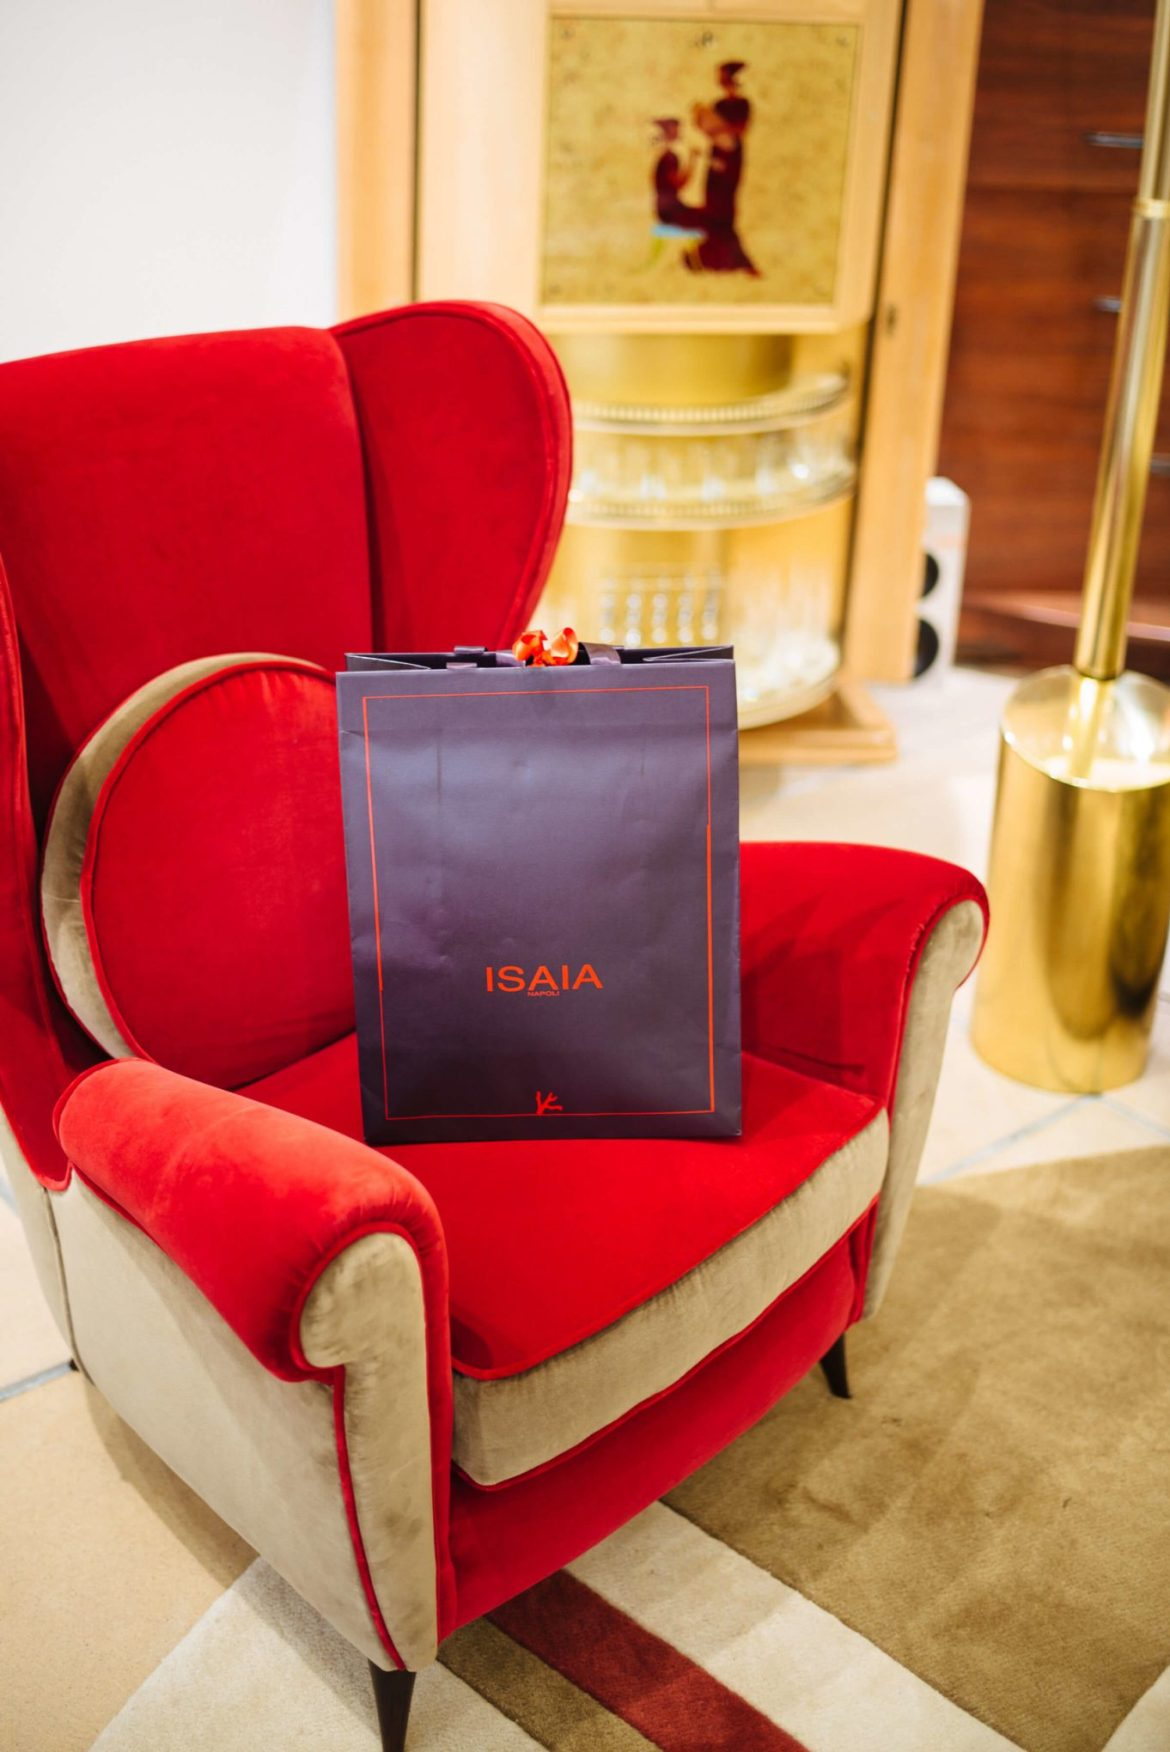 Italian chair in the Lounge at Isaia San Francisco Store, Neapolitan Isaia suits in the historic VC Morris Frank Lloyd Wright San Francisco, The Taste Edit